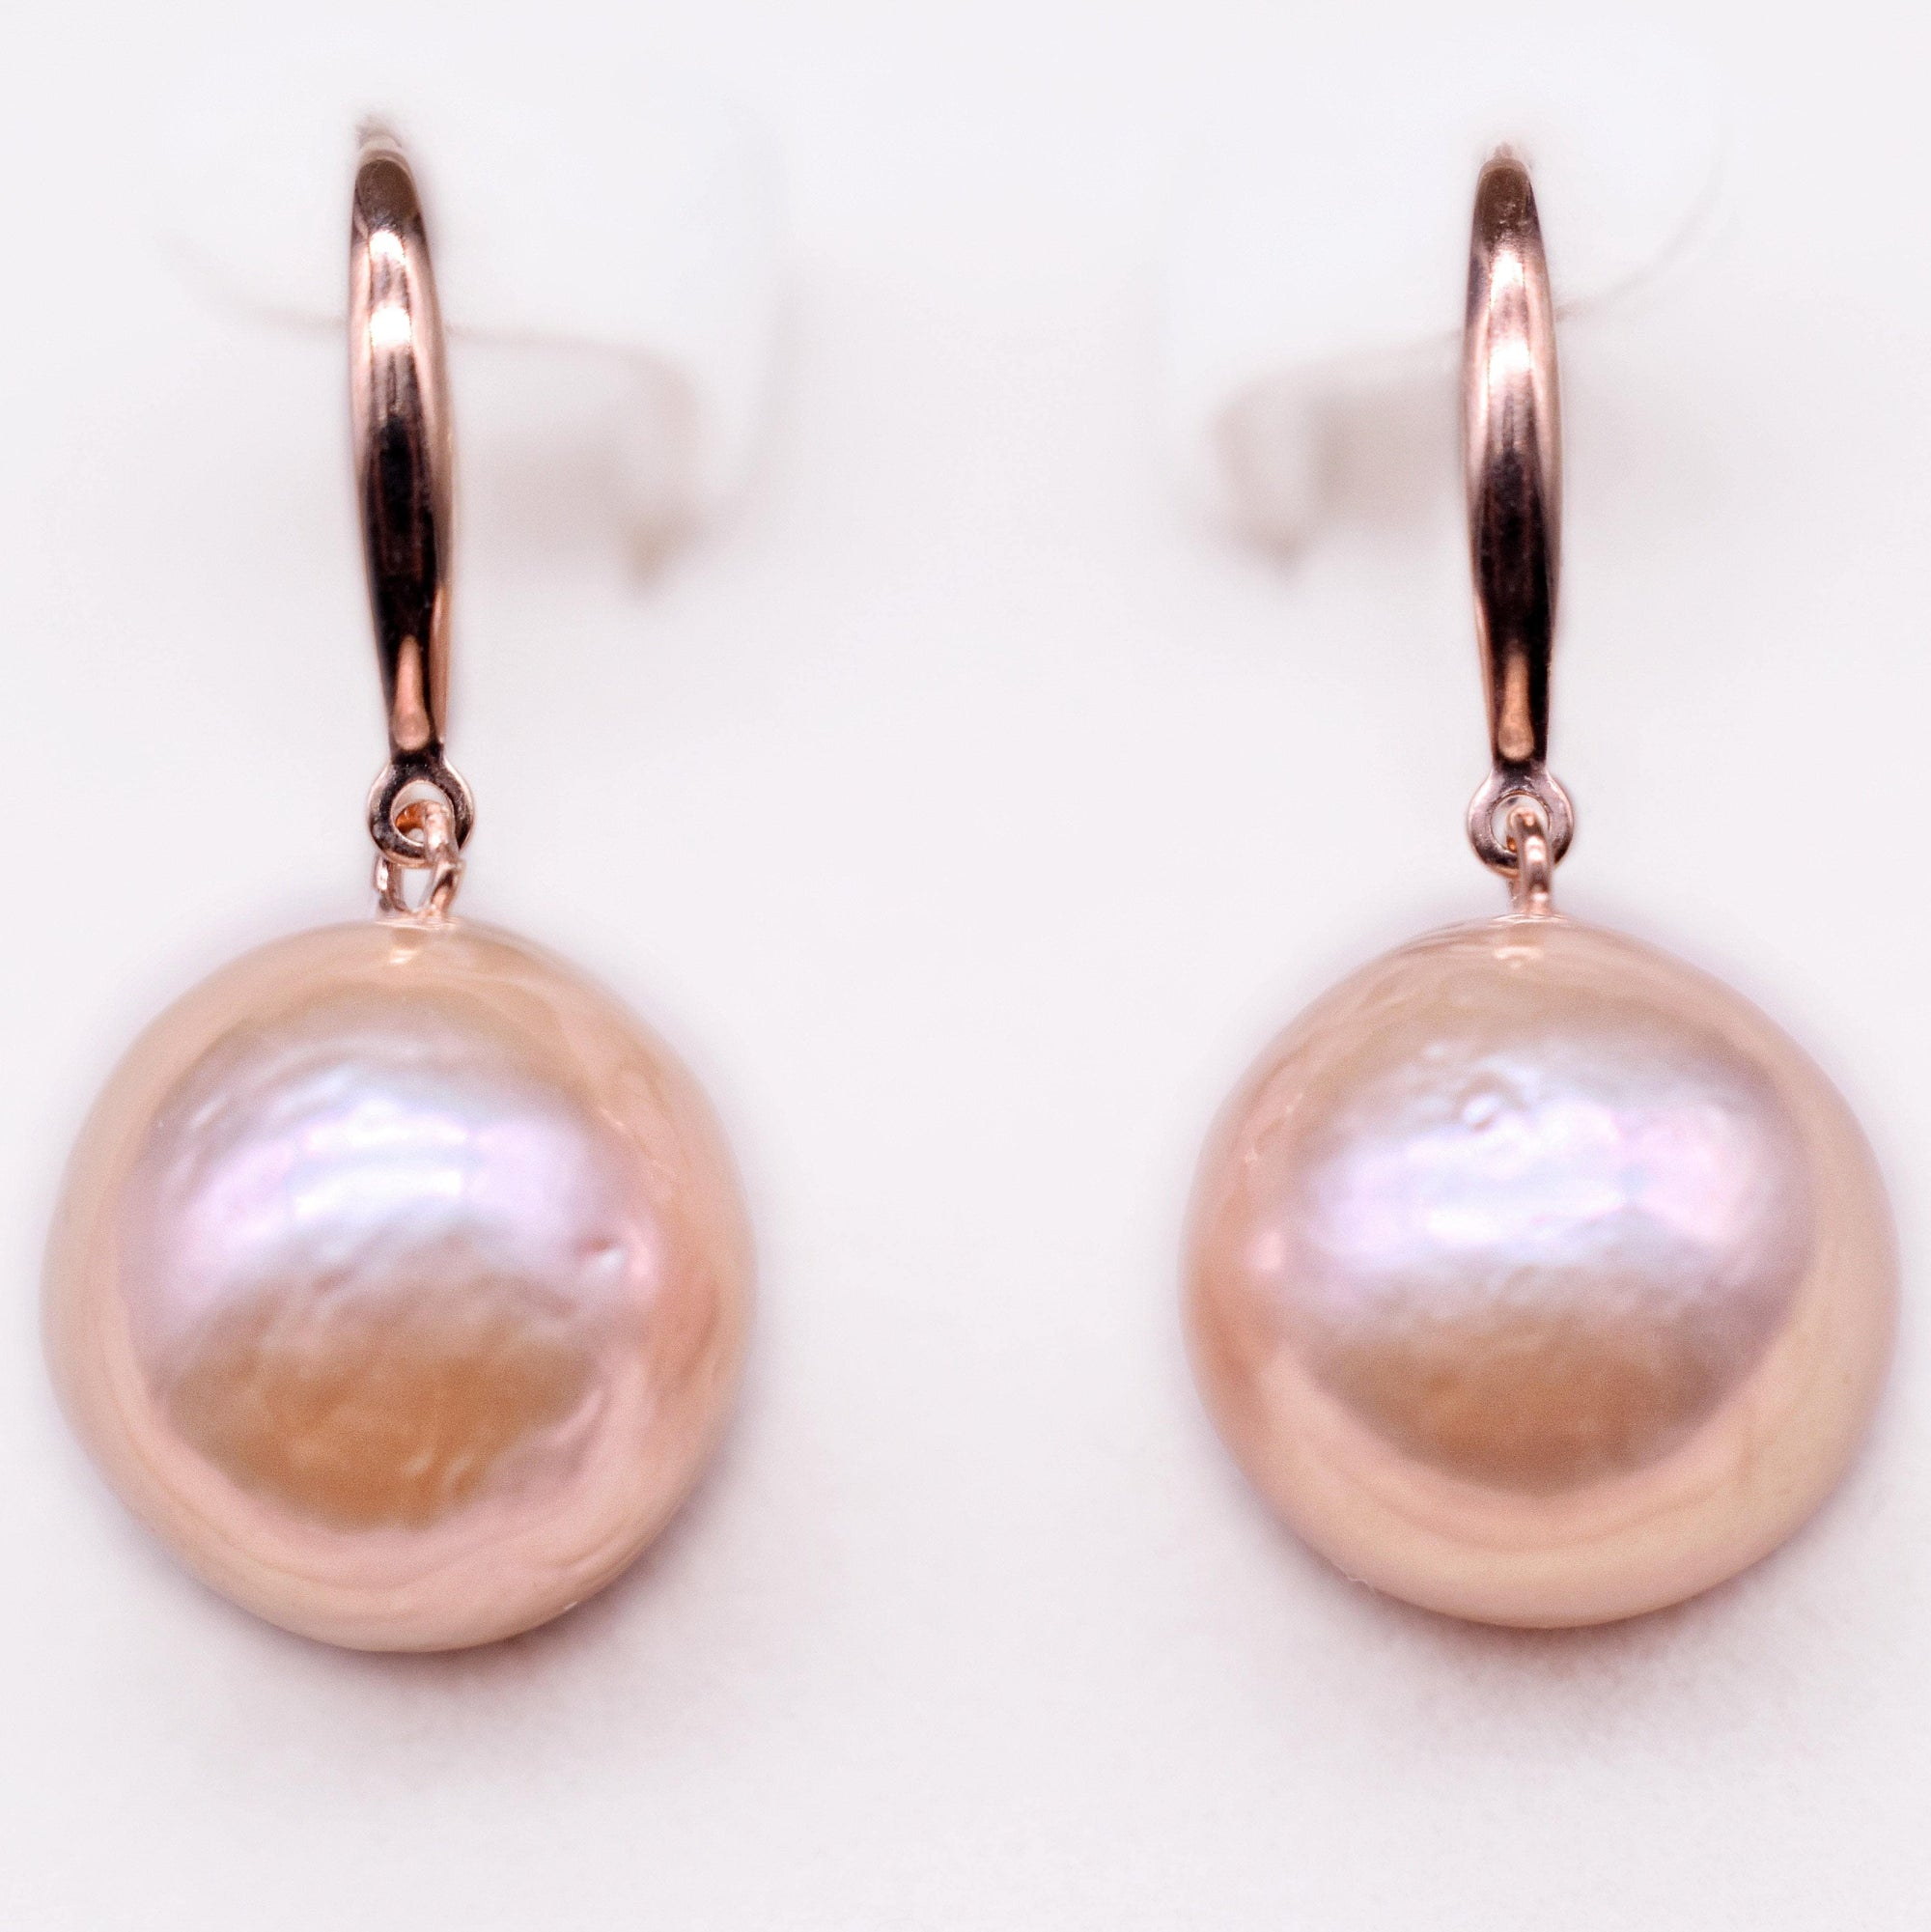 Baroque Pearl Earrings - Esmeralda - Akuna Pearls